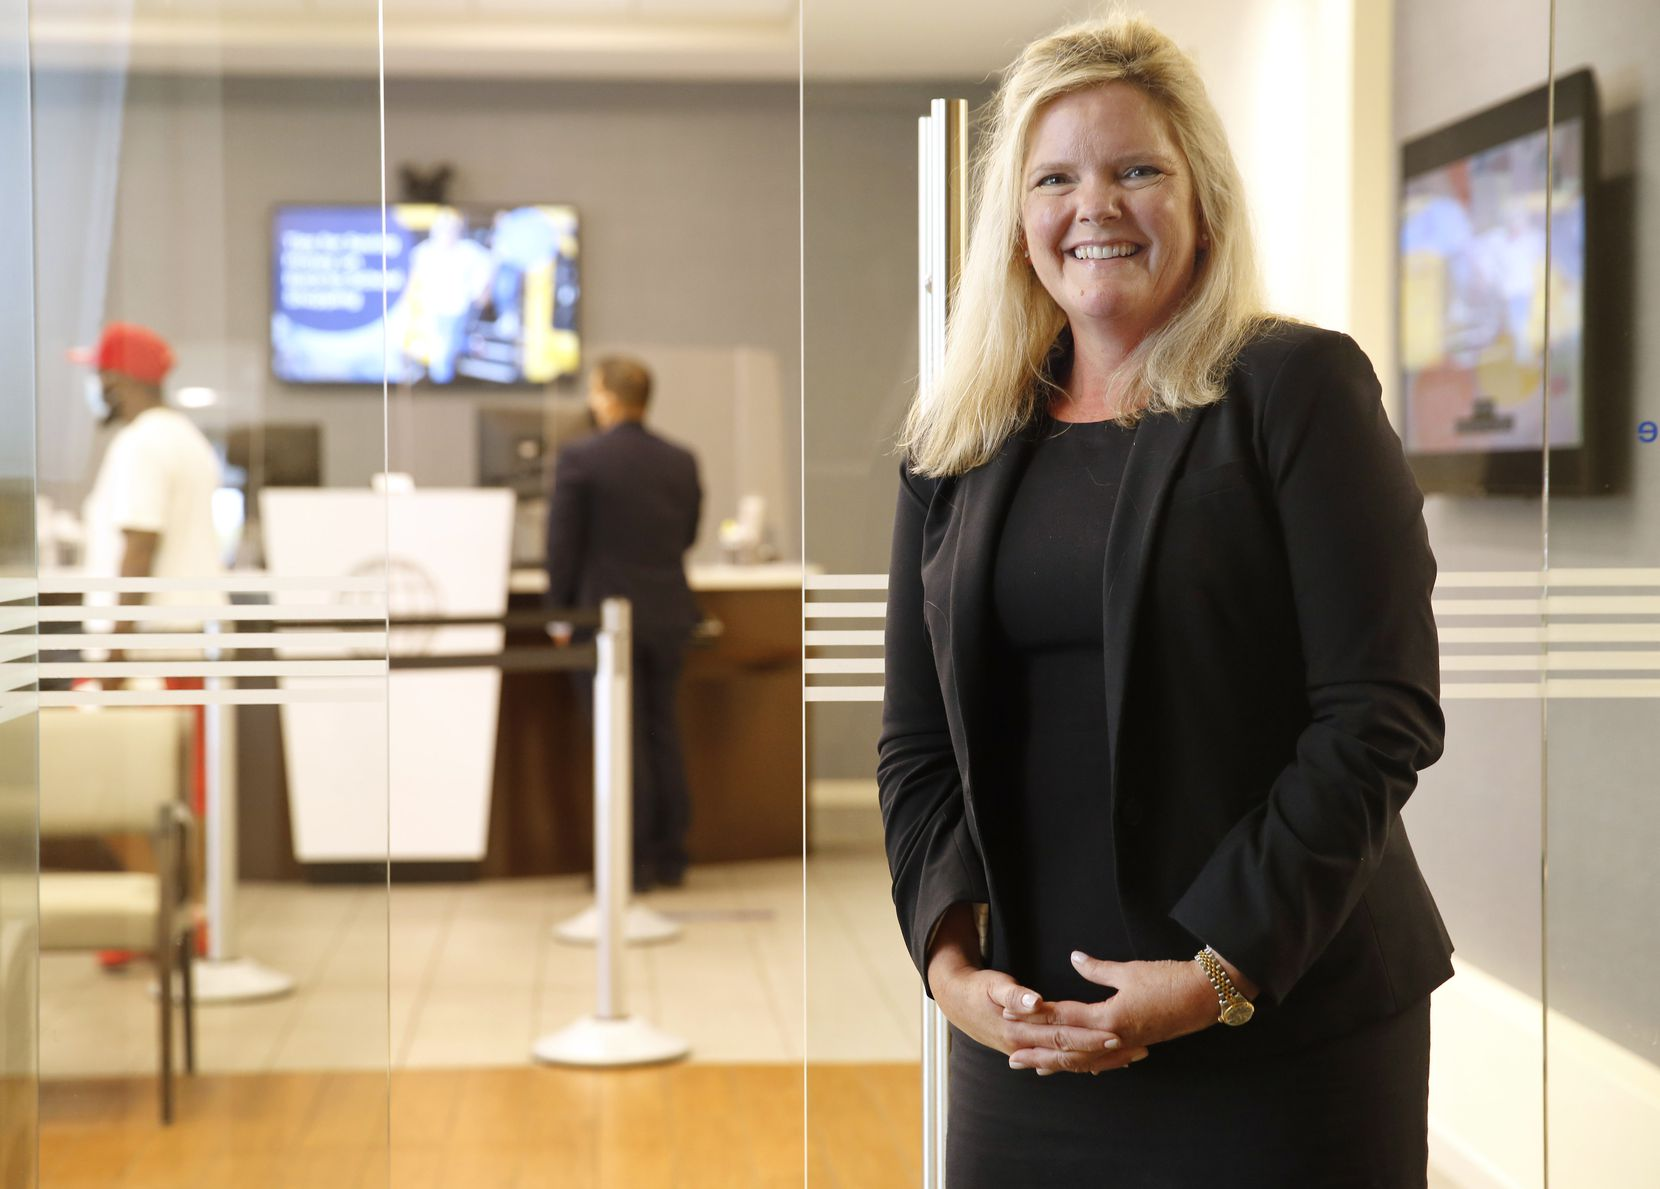 Michele Foster, regional manager of Texas North branch operations at Navy Federal Credit Union, says members see branch visits as part of their daily routine.